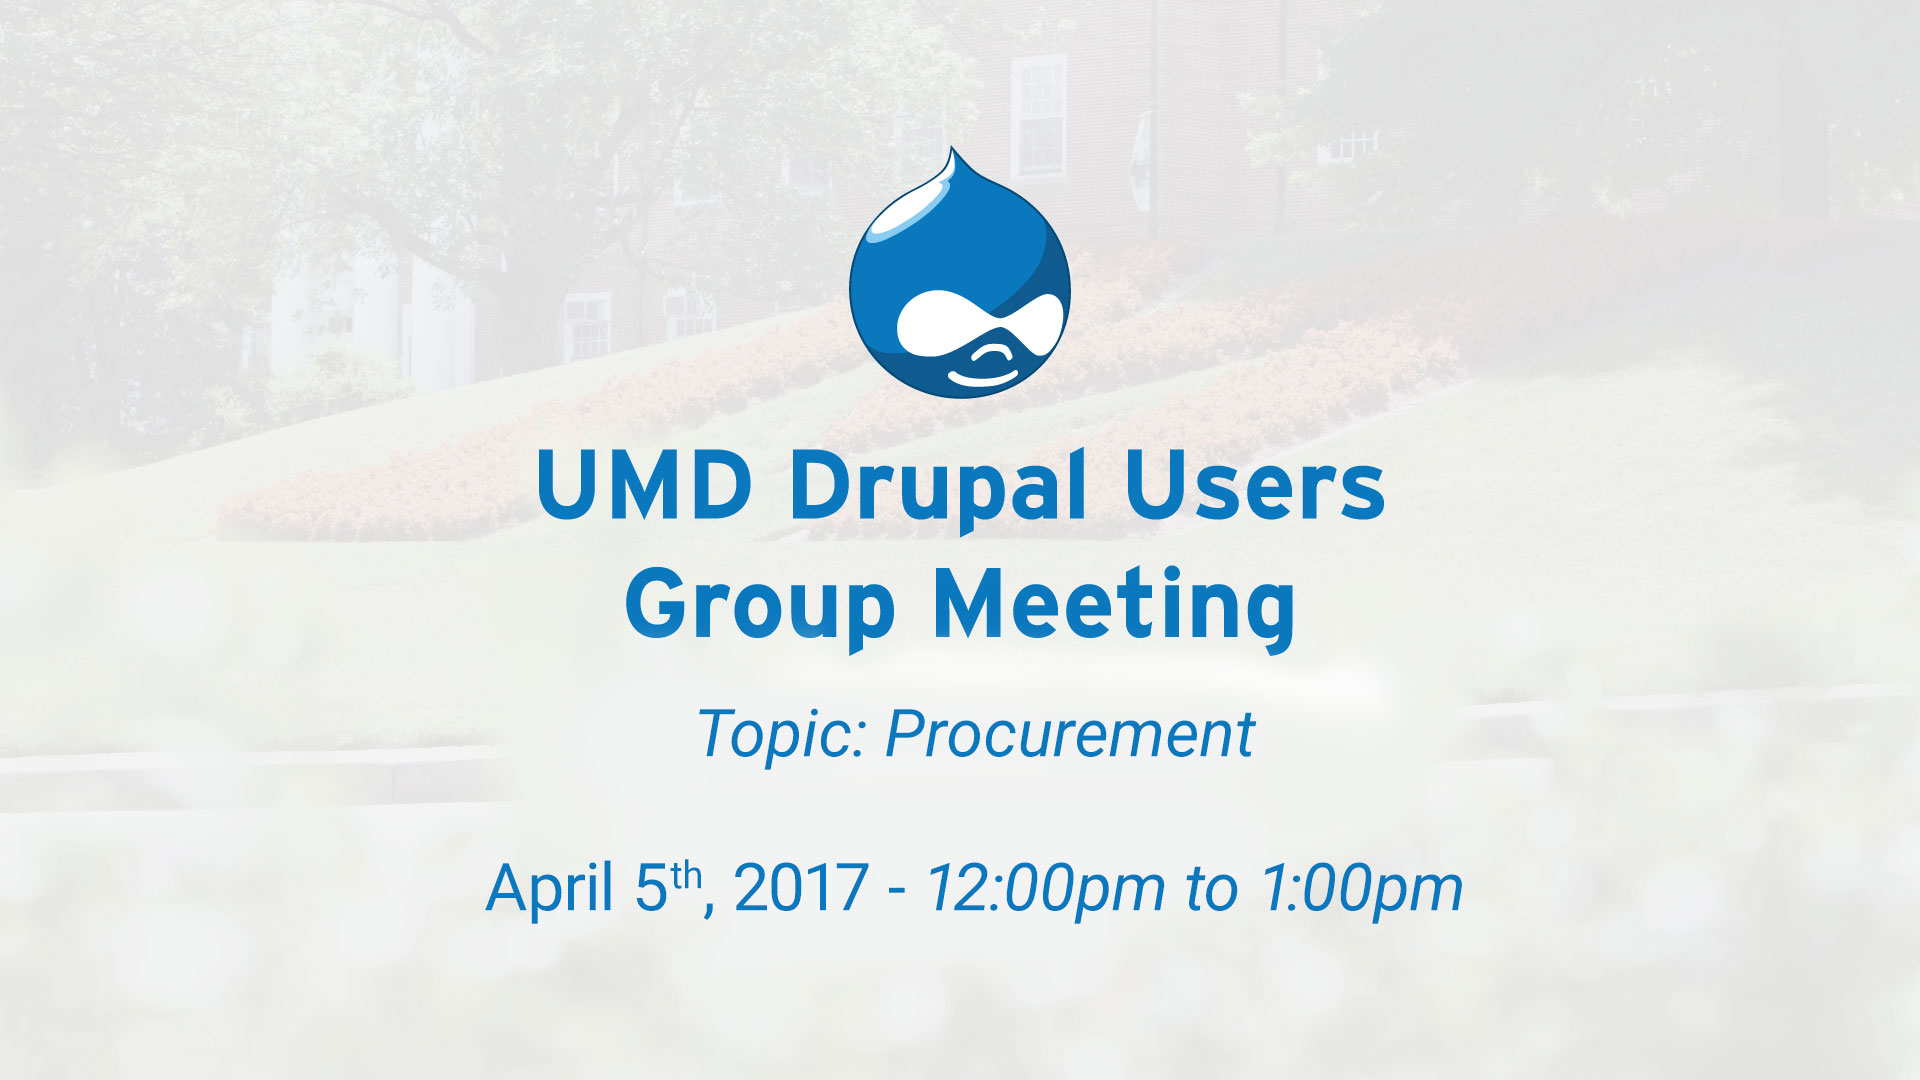 Drupal Users Group Procurement